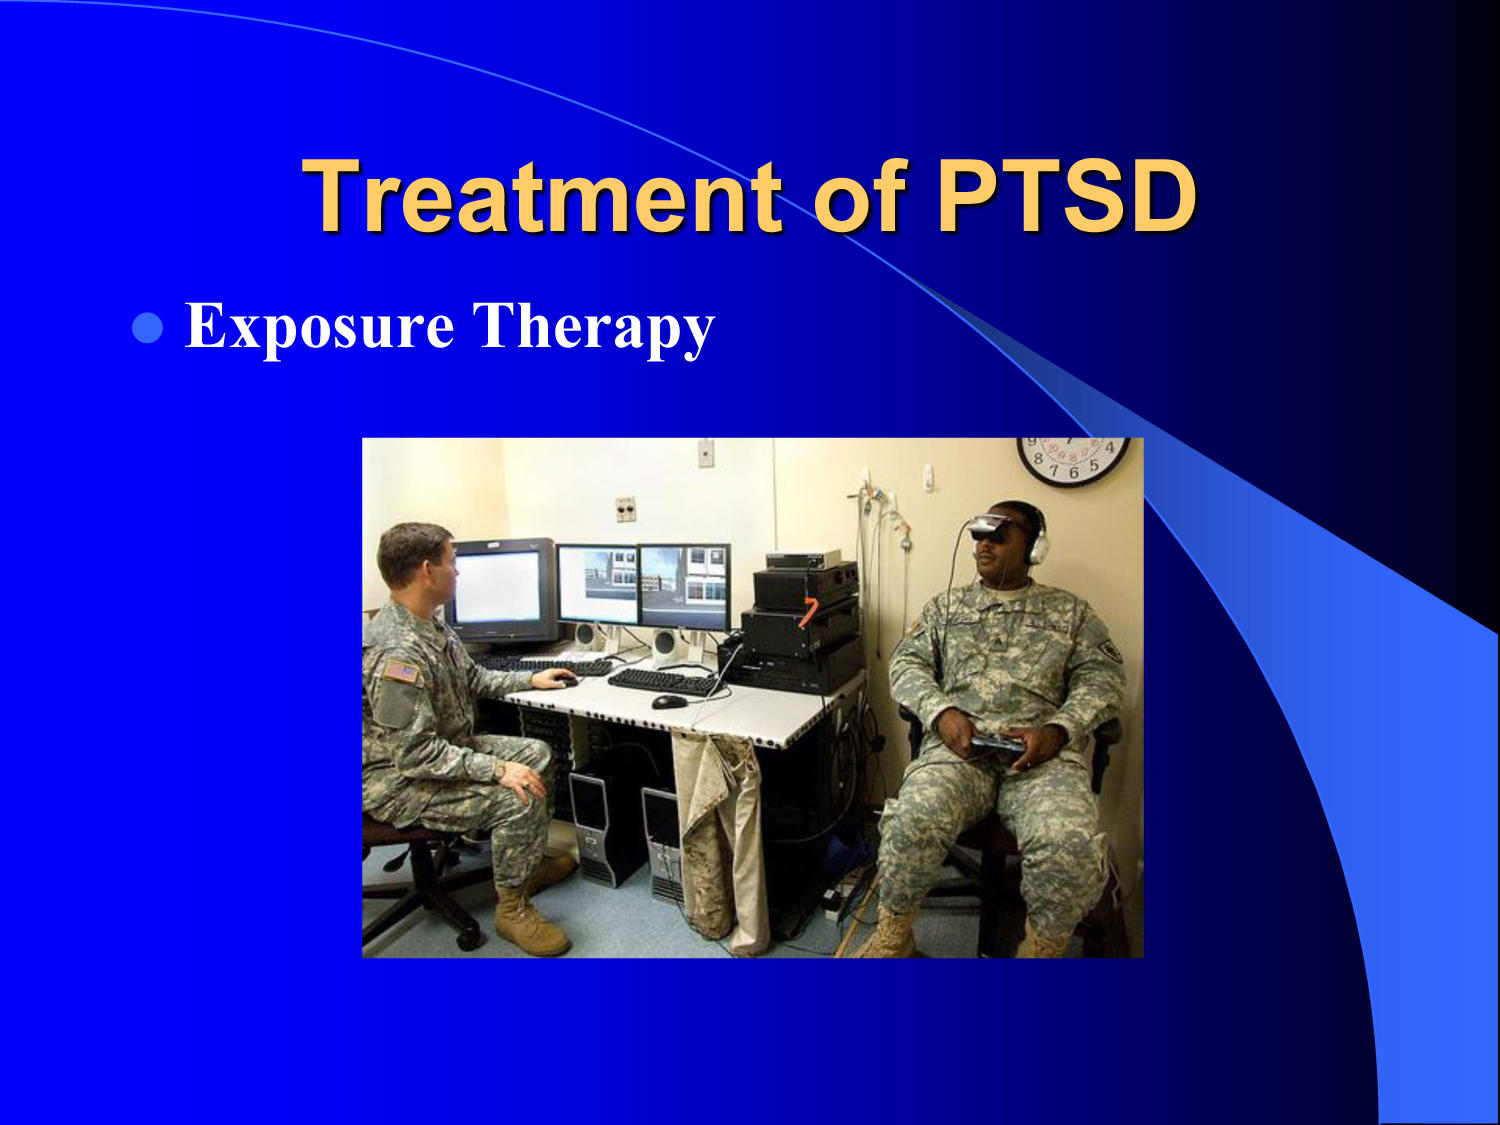 Posttraumatic Stress Disorder (PTSD): What is it and what causes it?                                                                                                      [Sequence #]: 15 of 17